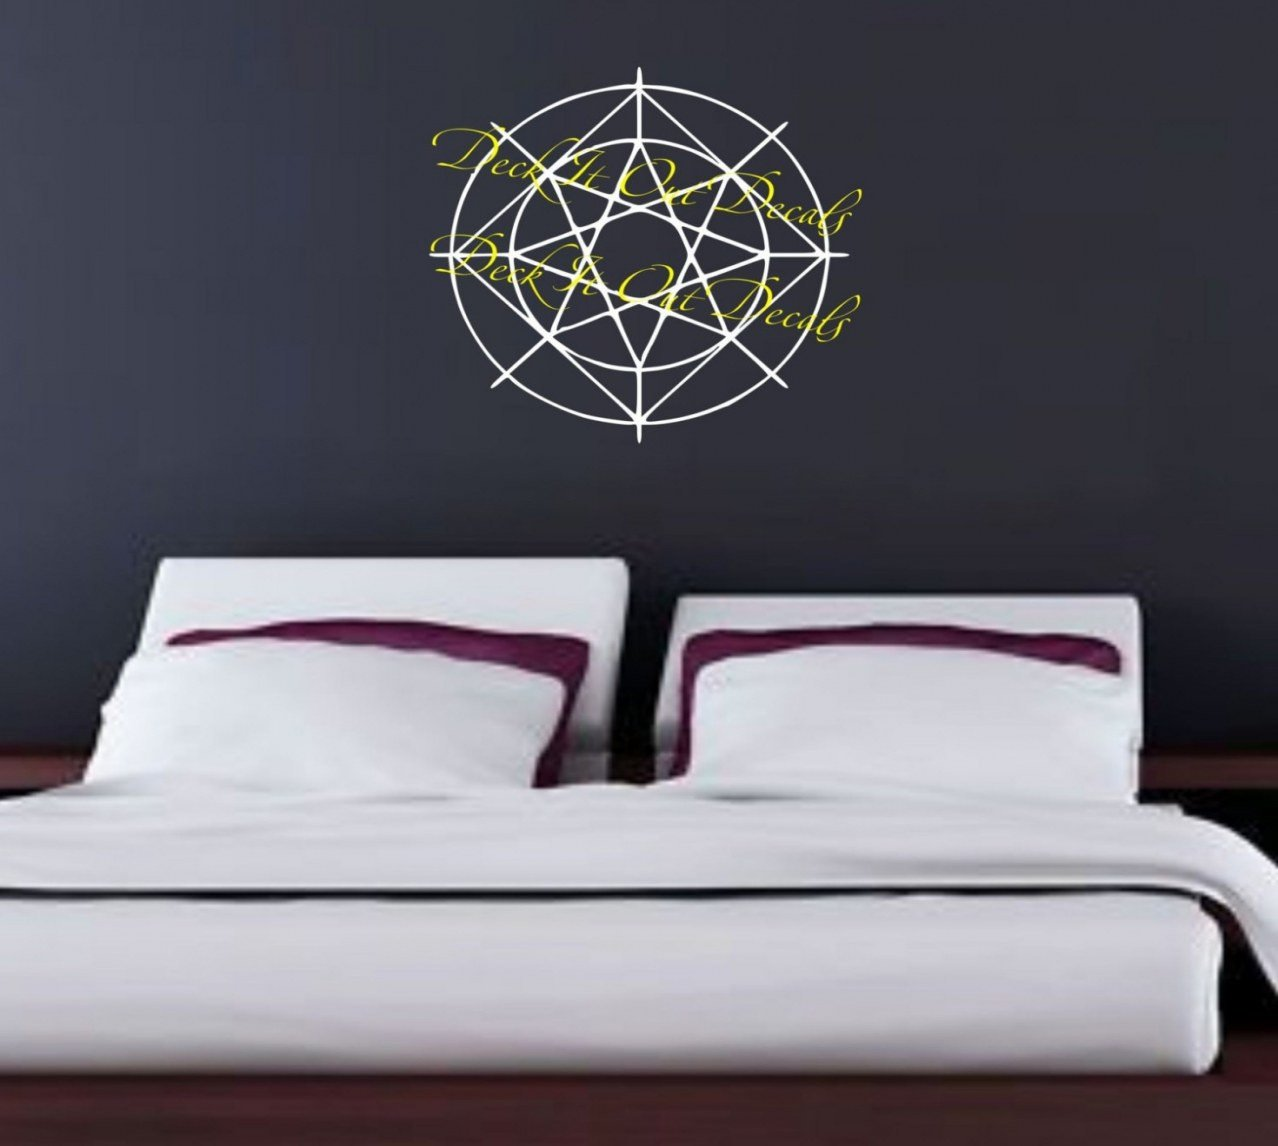 Wall Light for Bedroom Unique Home Decoration Ideas Wall Decal Luxury 1 Kirkland Wall